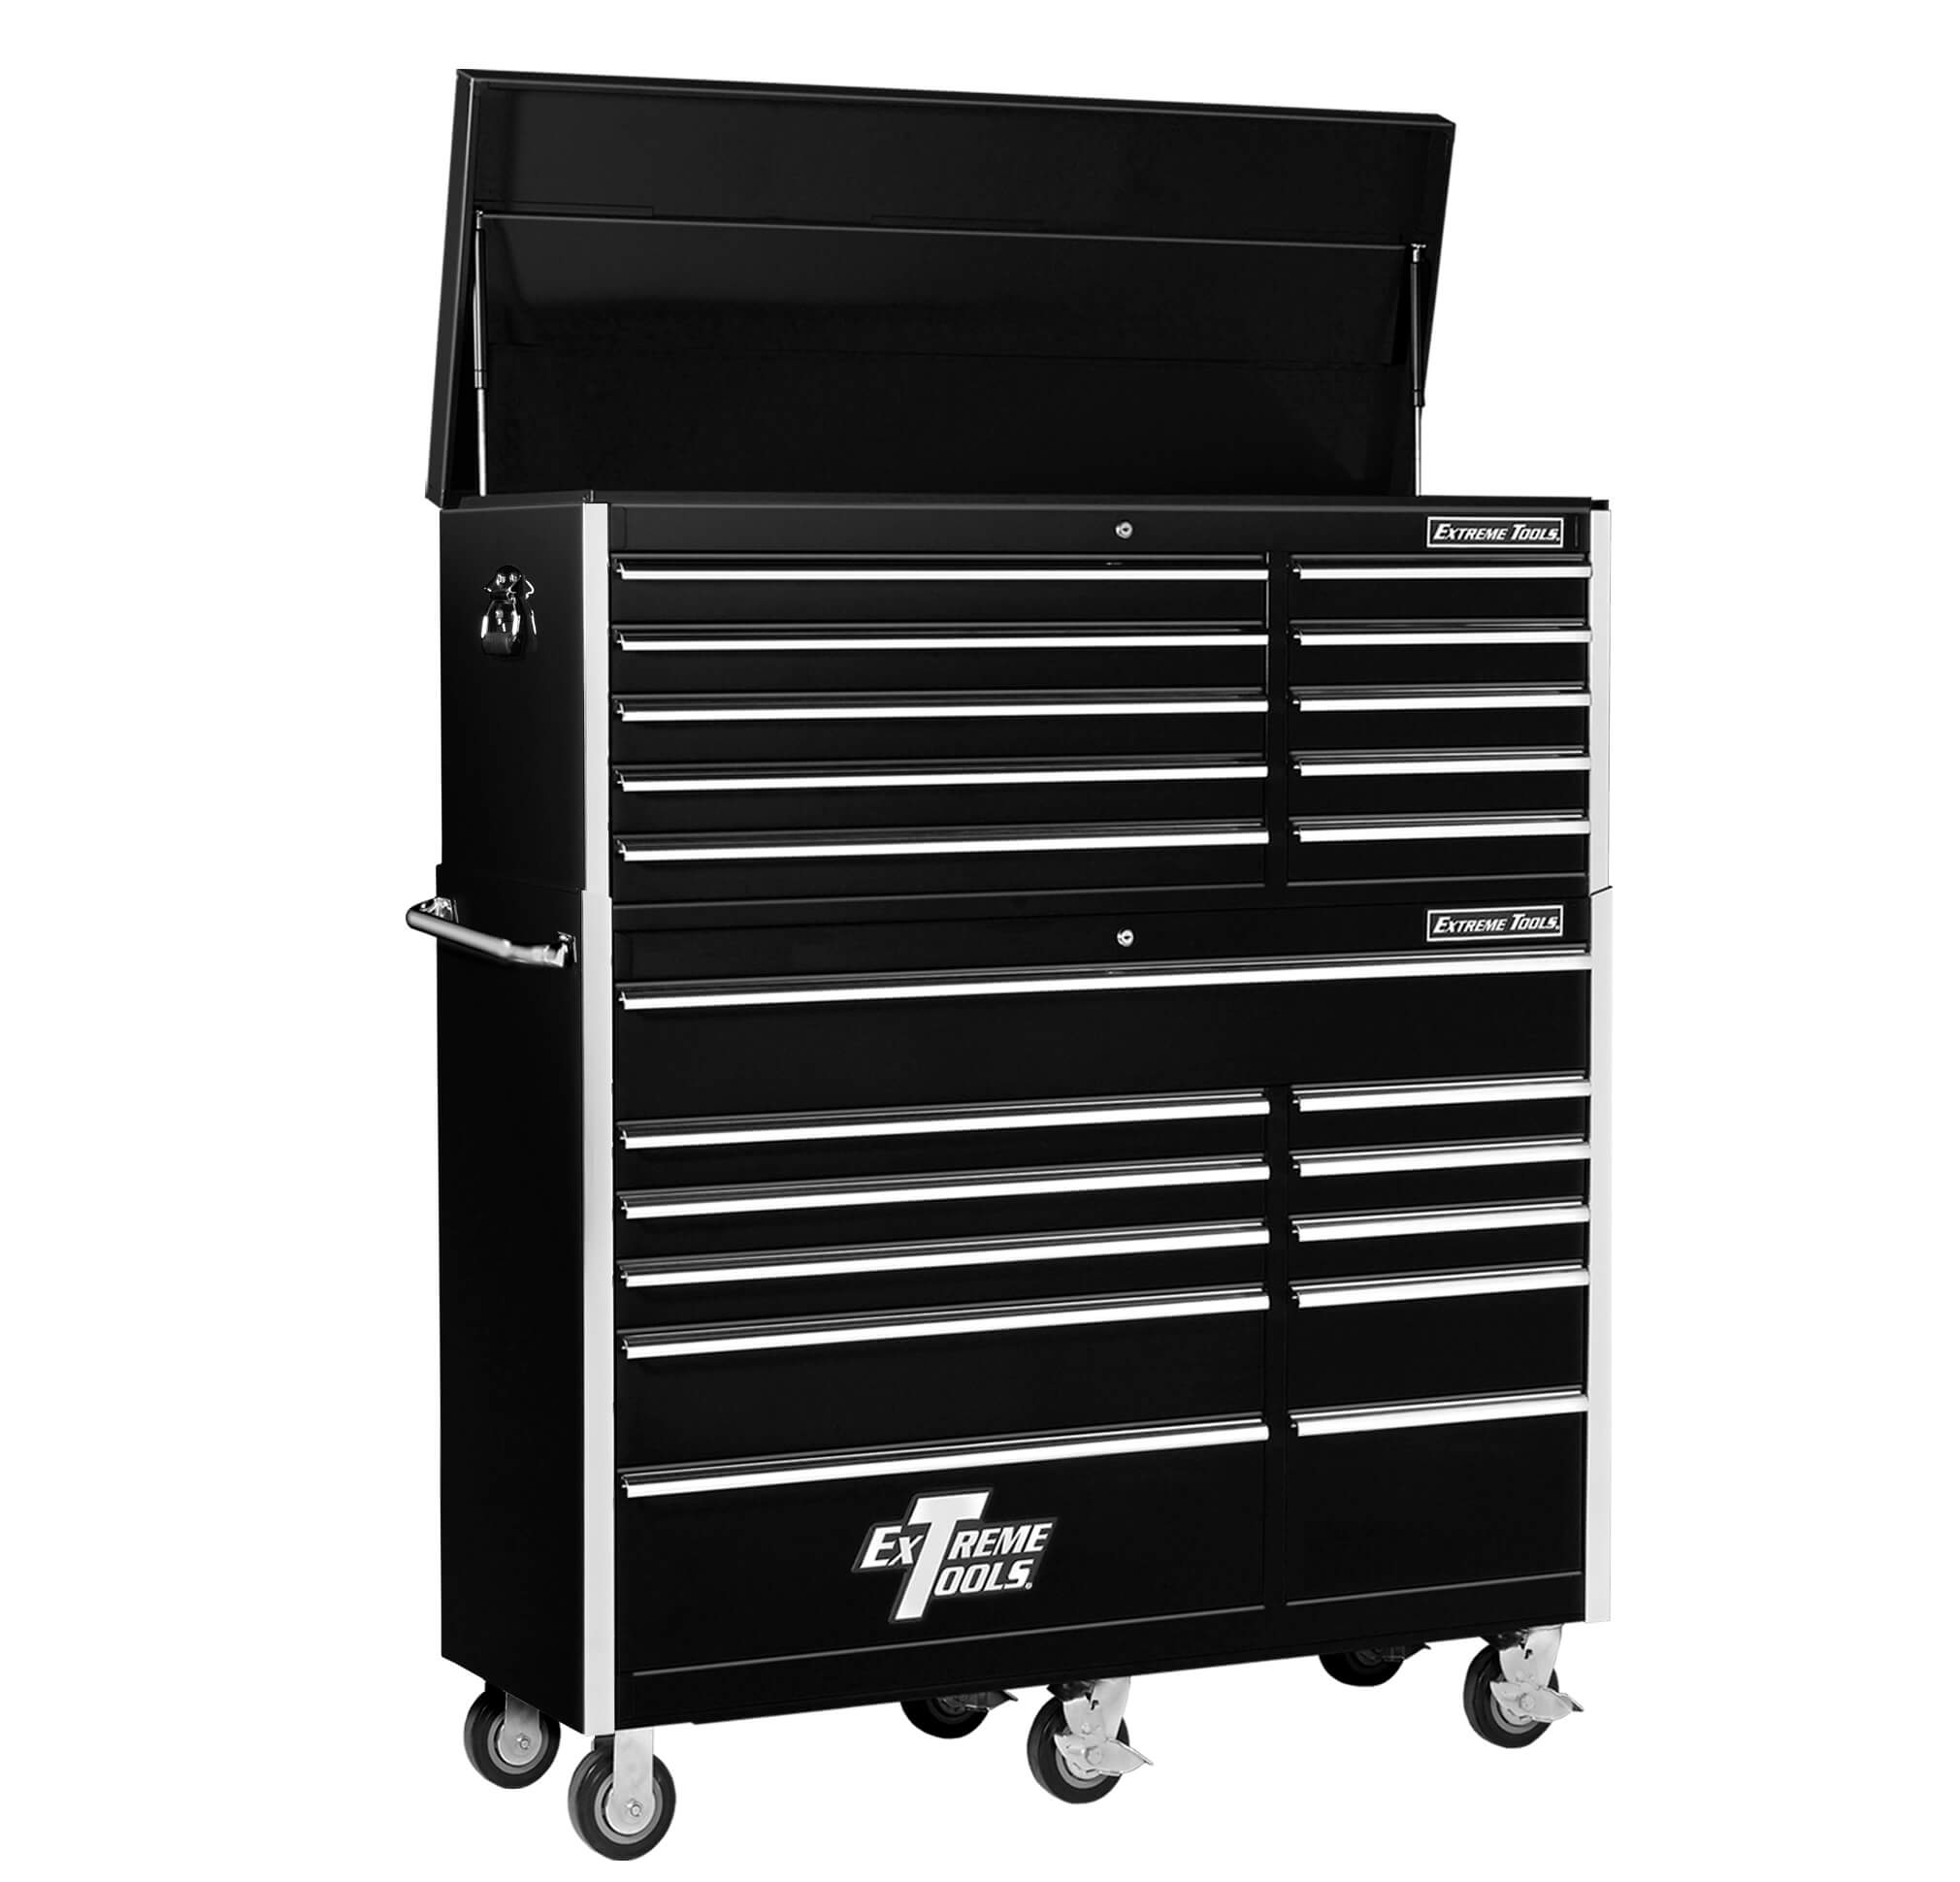 EXTREME TOOLS® 56 inch 10 DRAWER TOP CHEST/11 DRAWER ROLLER CABINET COMBO